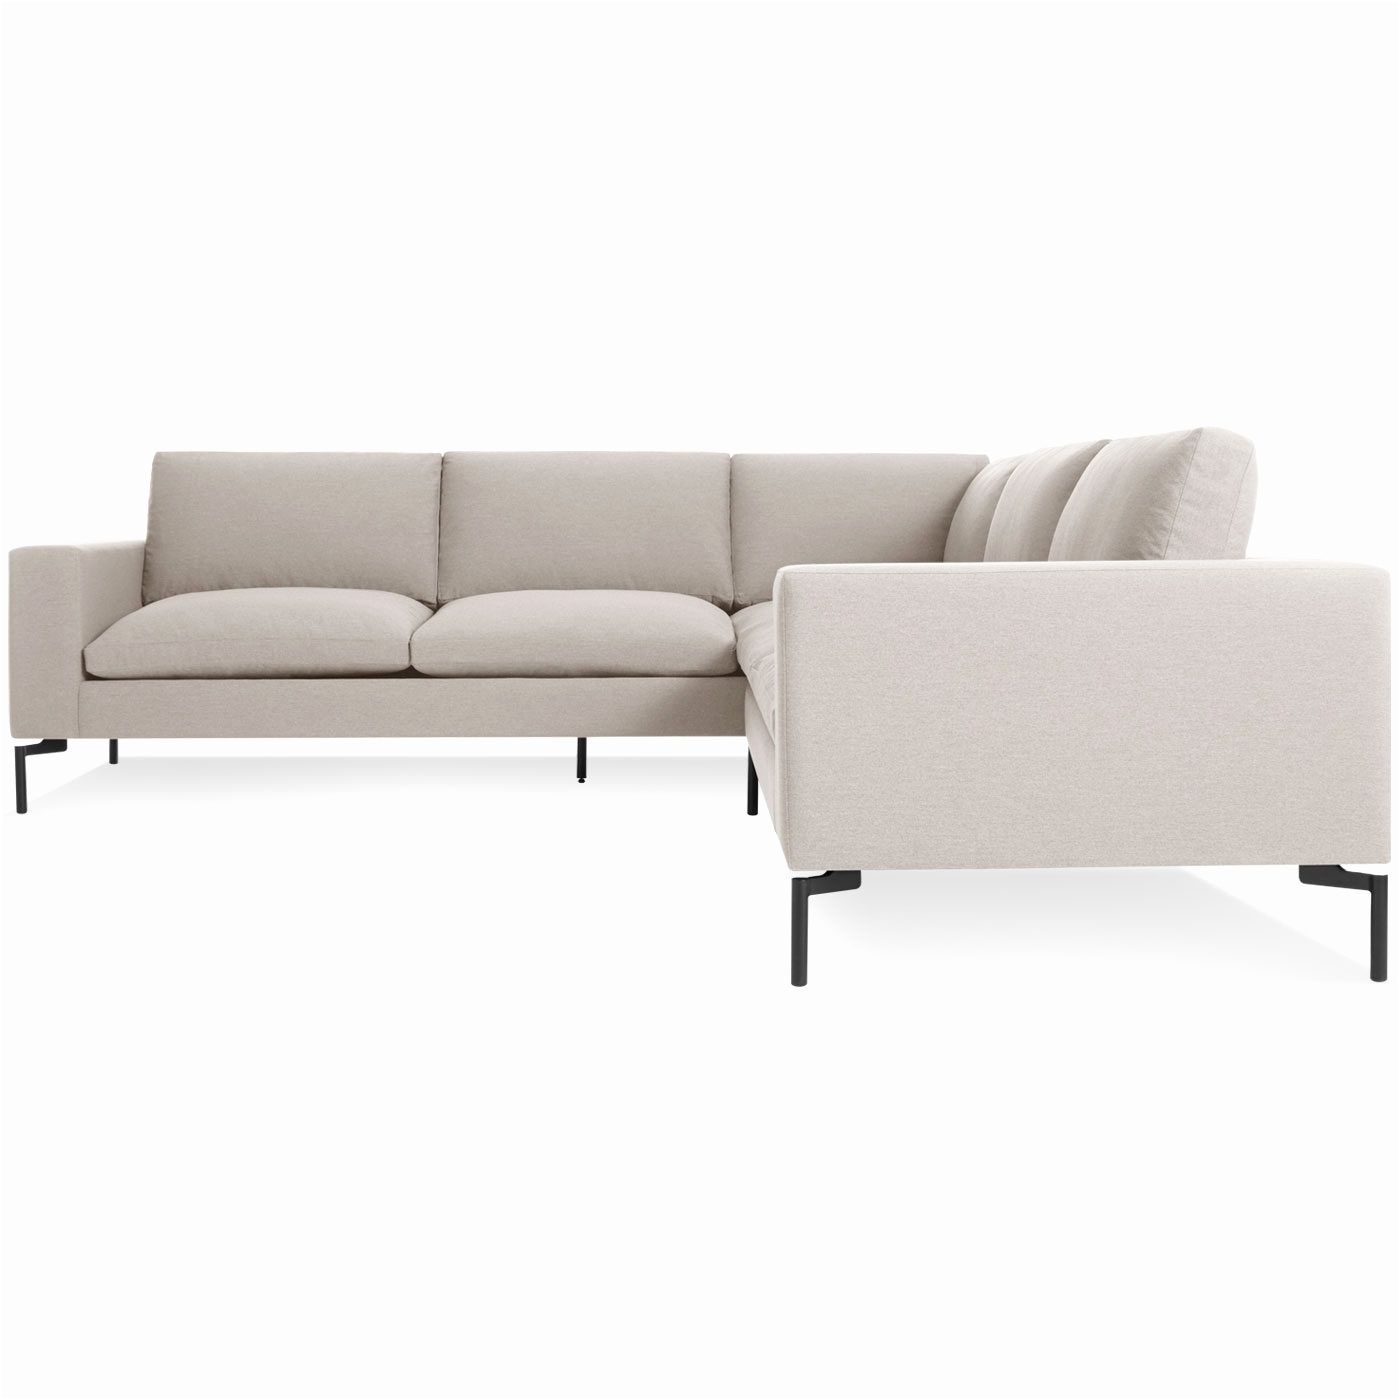 Living Room : Best Small Modern Sectionals Sectional Sofa Bed Regarding Current Small Sectional Sofas (View 6 of 20)